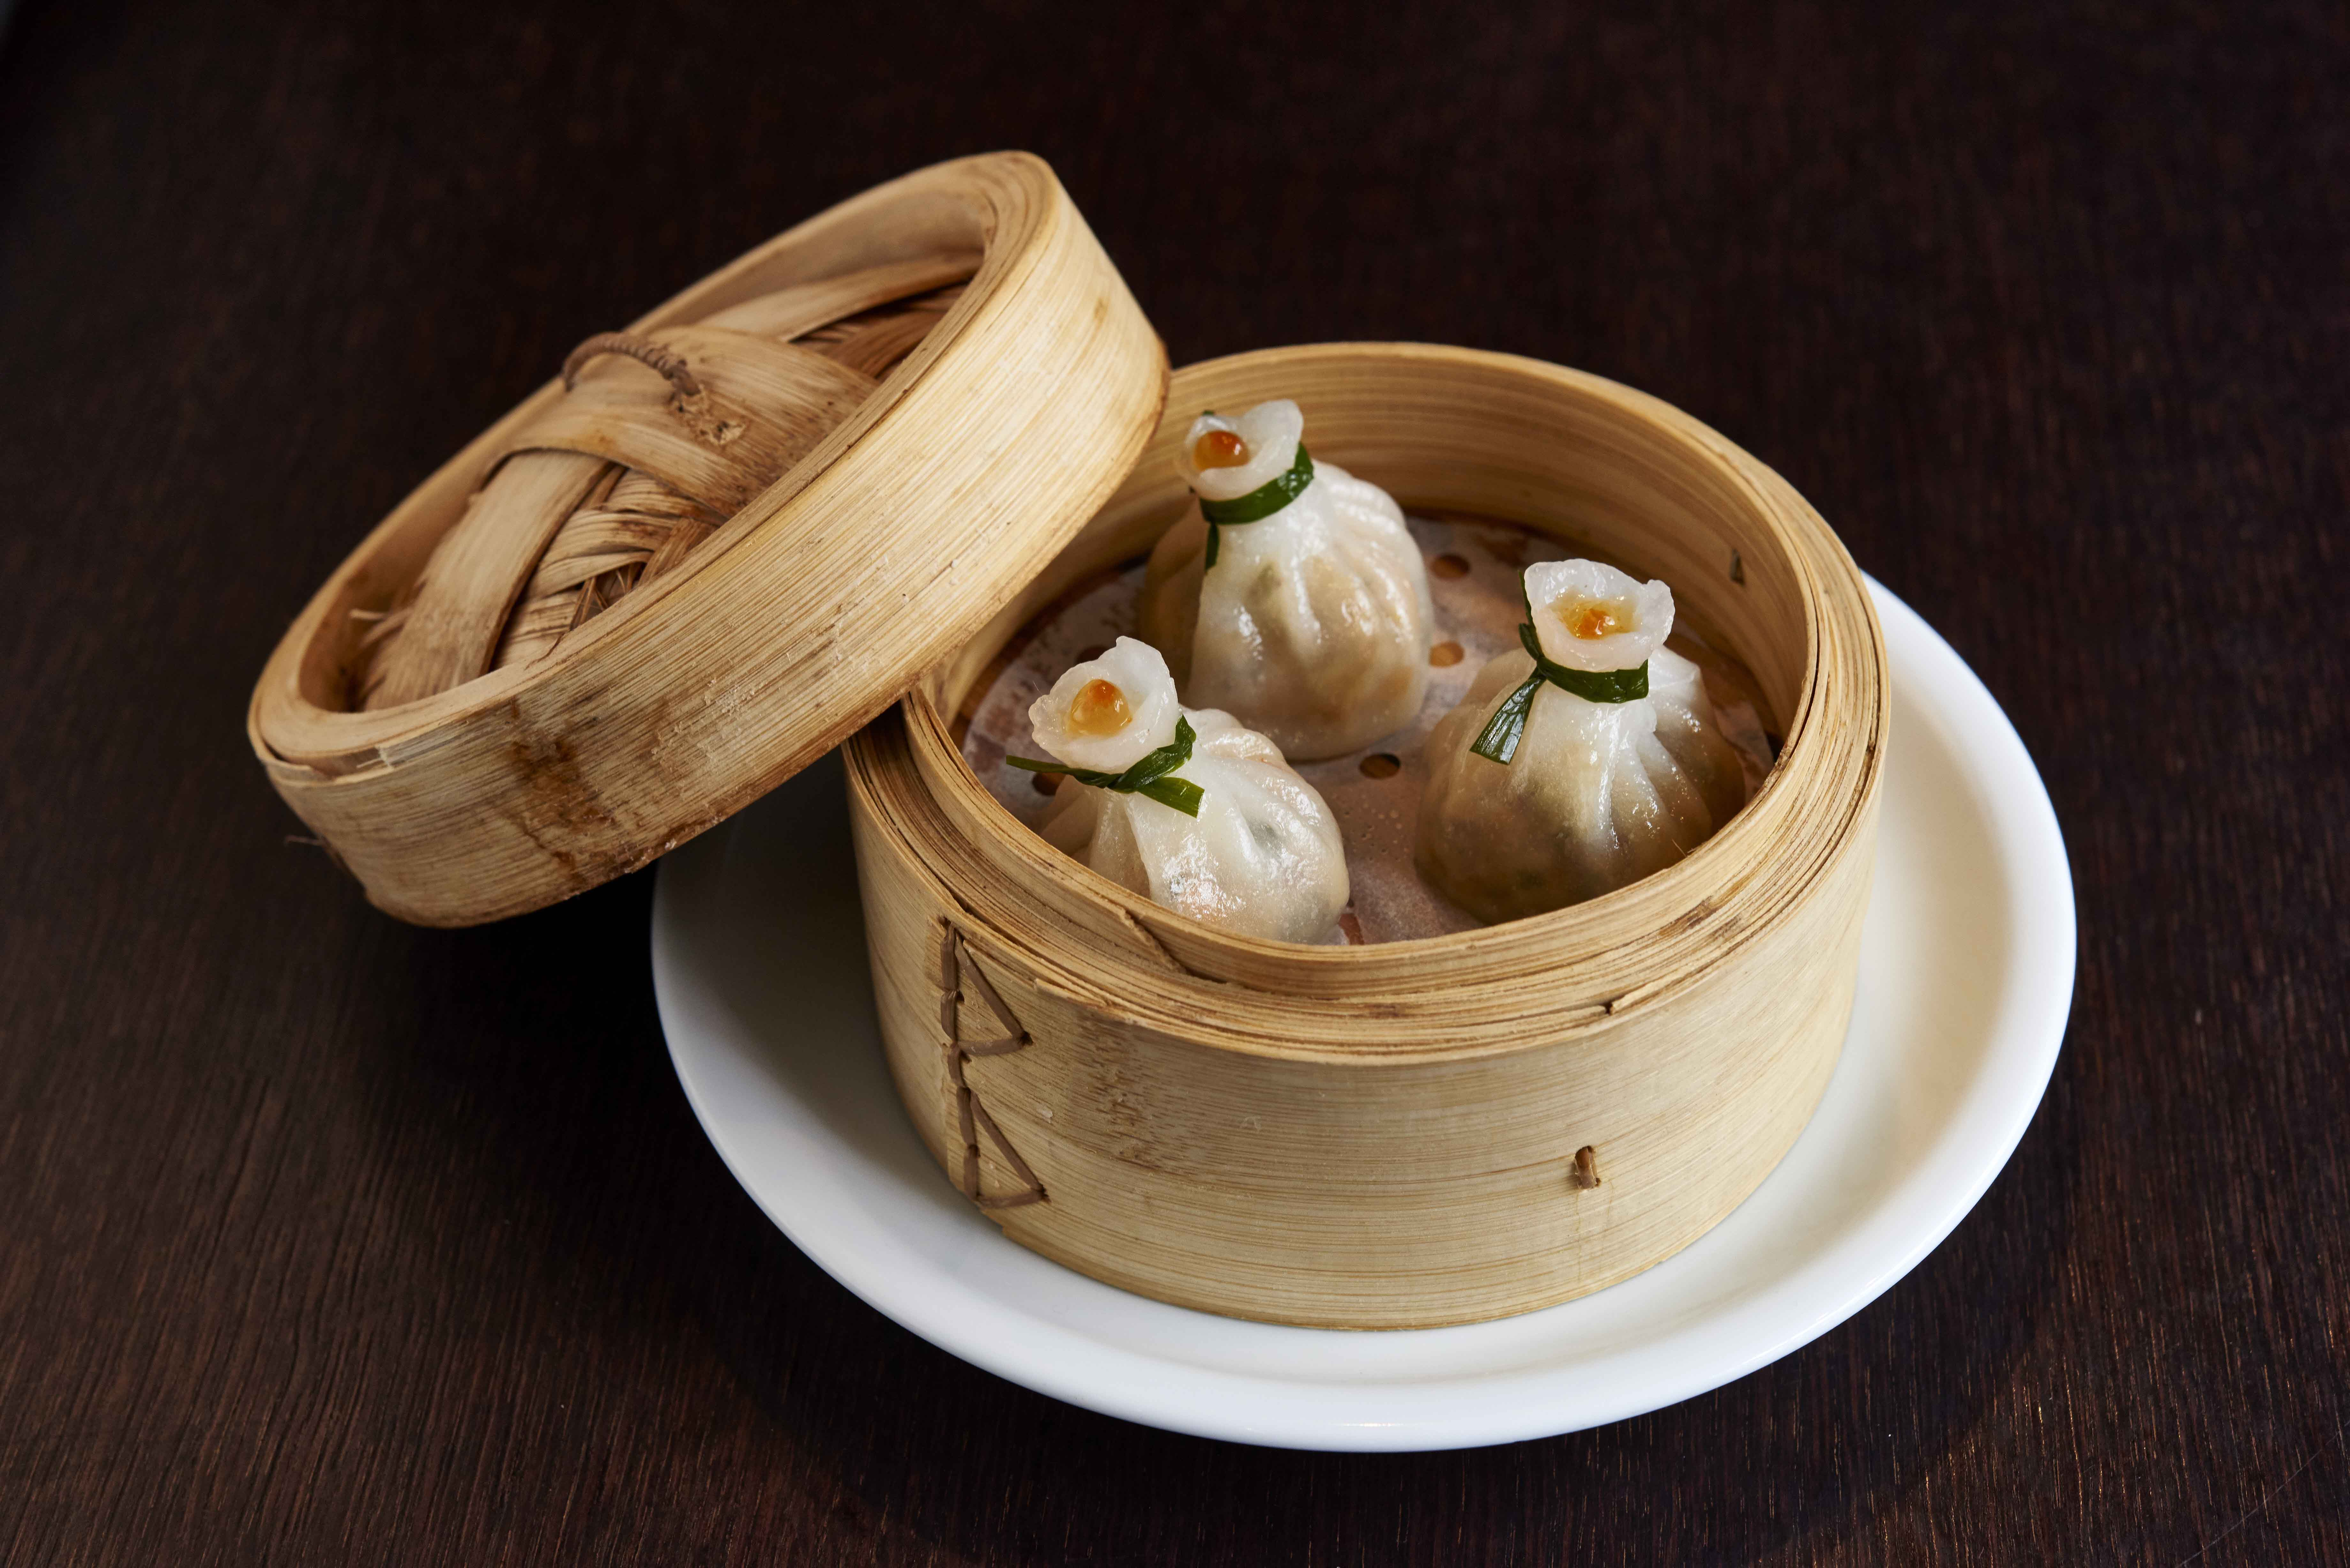 A bamboo steamer filled with dumplings at PlumValley Chinatown London